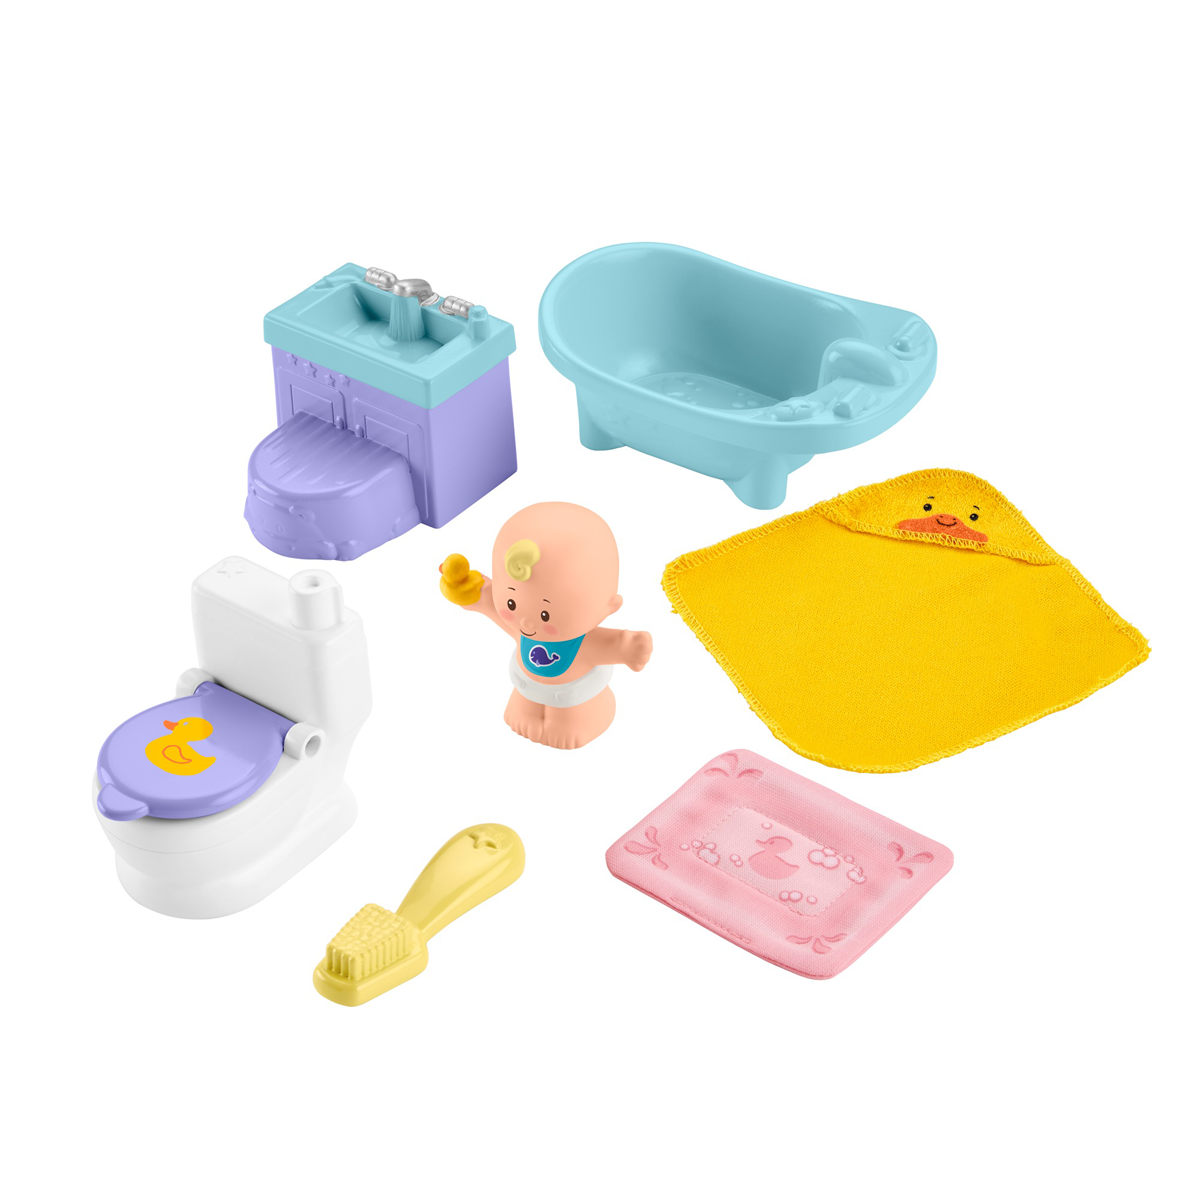 Fisher-Price Little People Wash & Go Playset from Early Learning Center